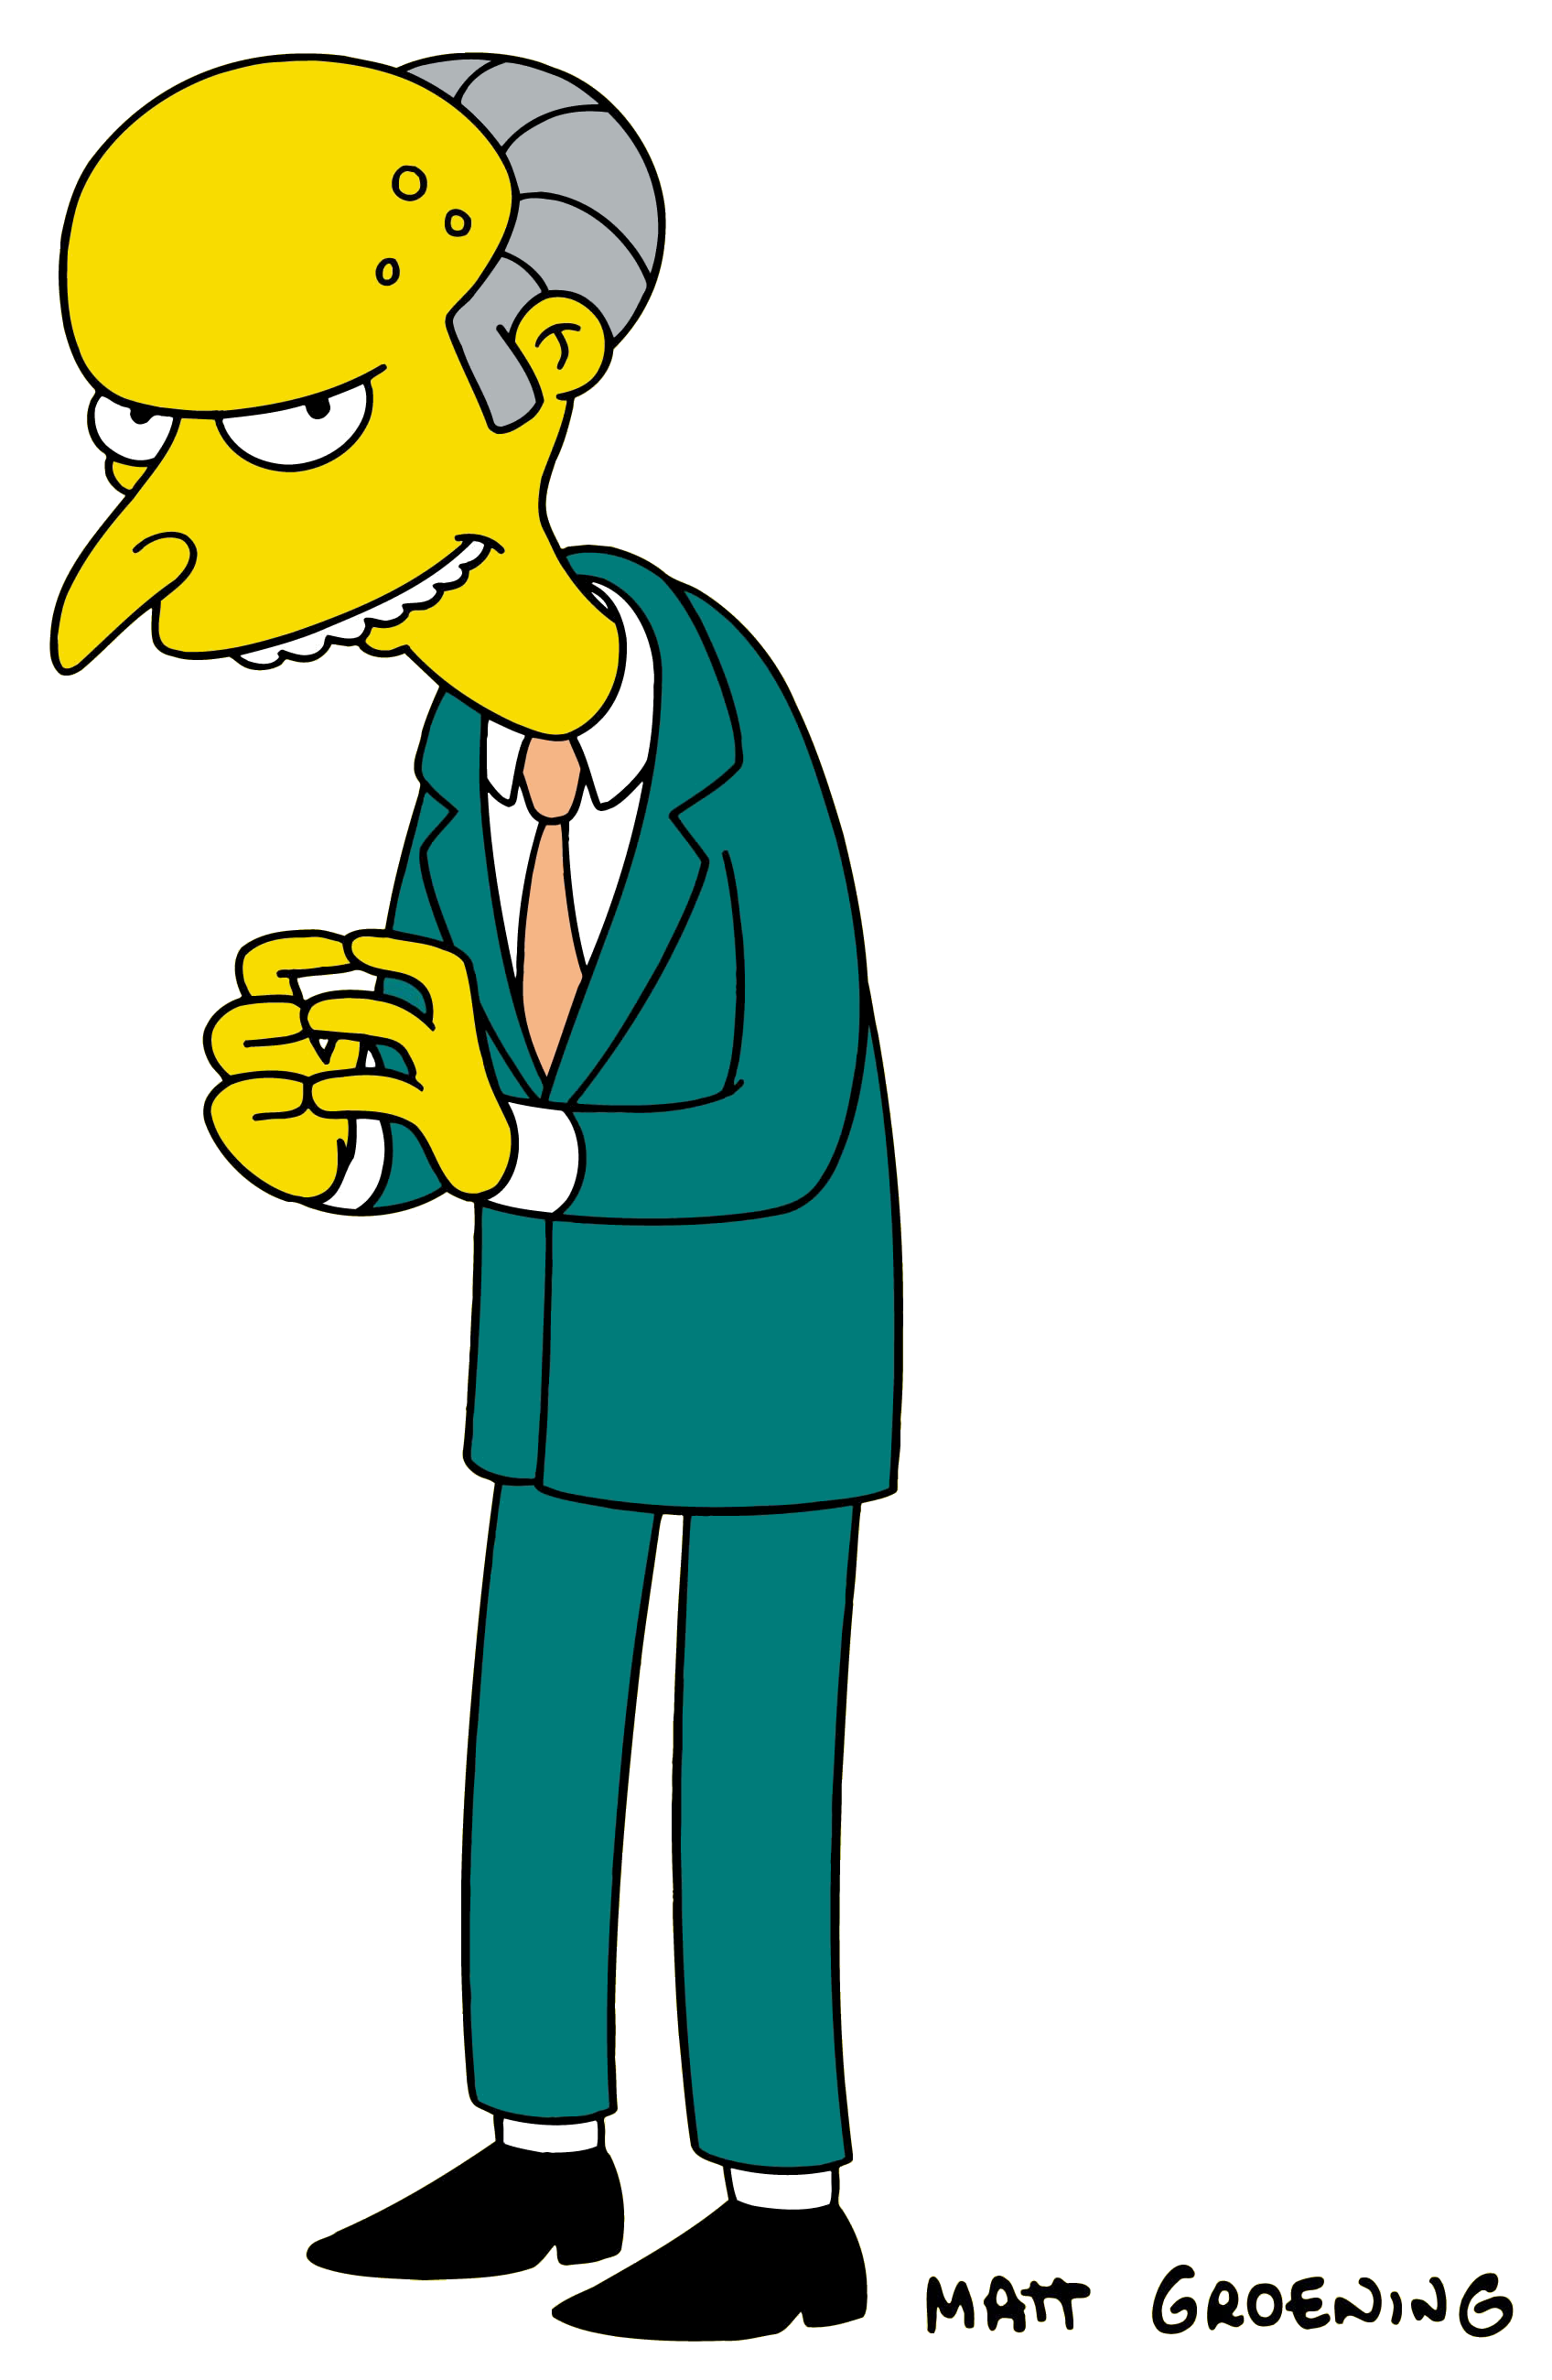 Simpsons barney png. Image charles montgomery burns